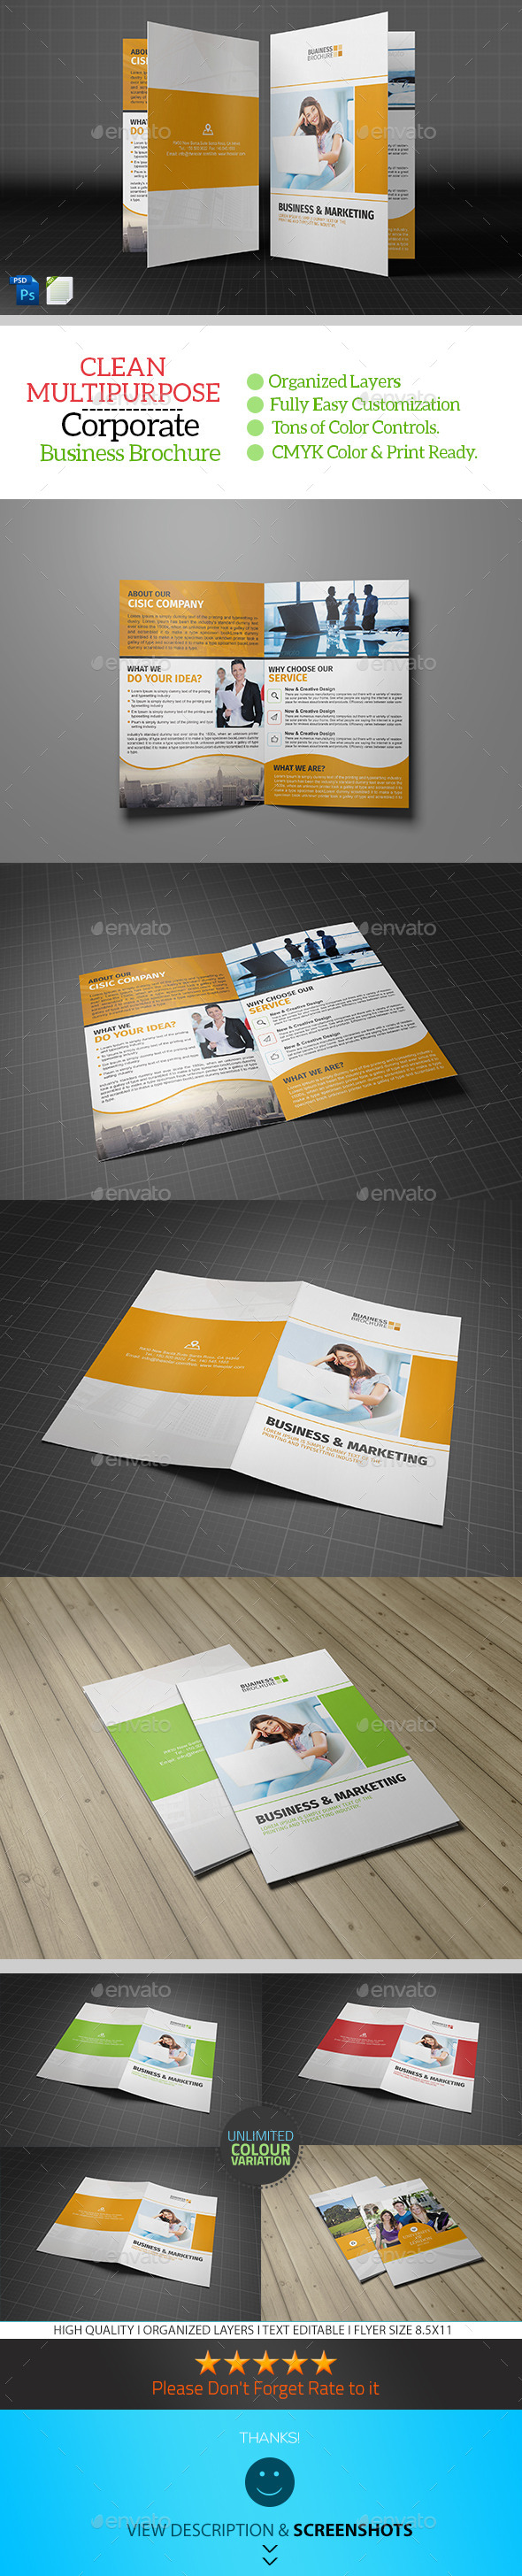 Corporate Bifold Brochure Template Vol04 - Corporate Brochures